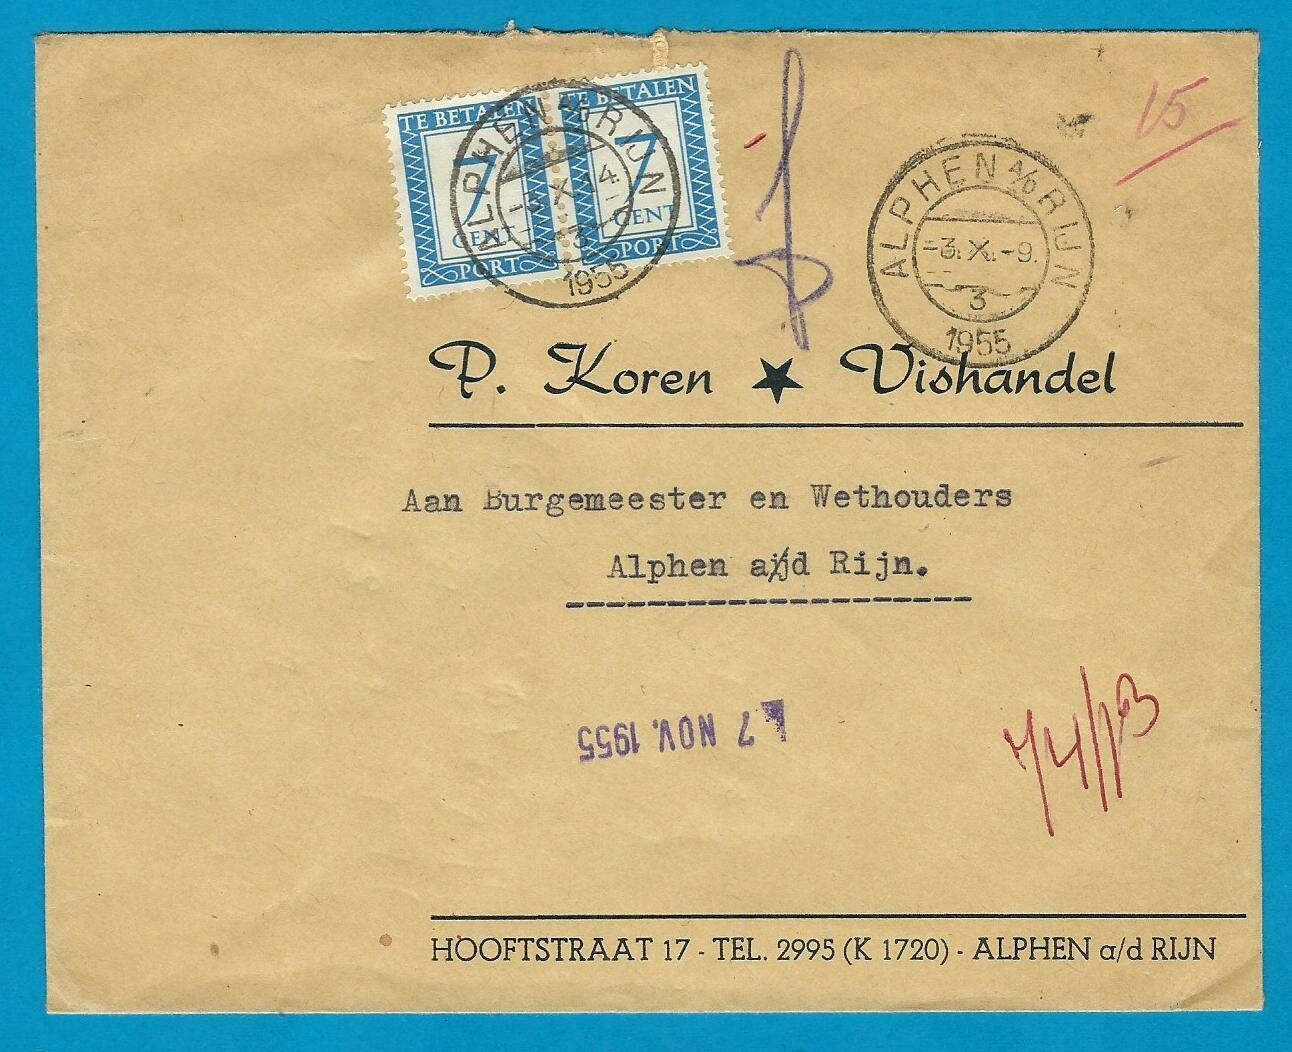 NEDERLAND brief 1955 Alphen lokaal met port 2x7ct